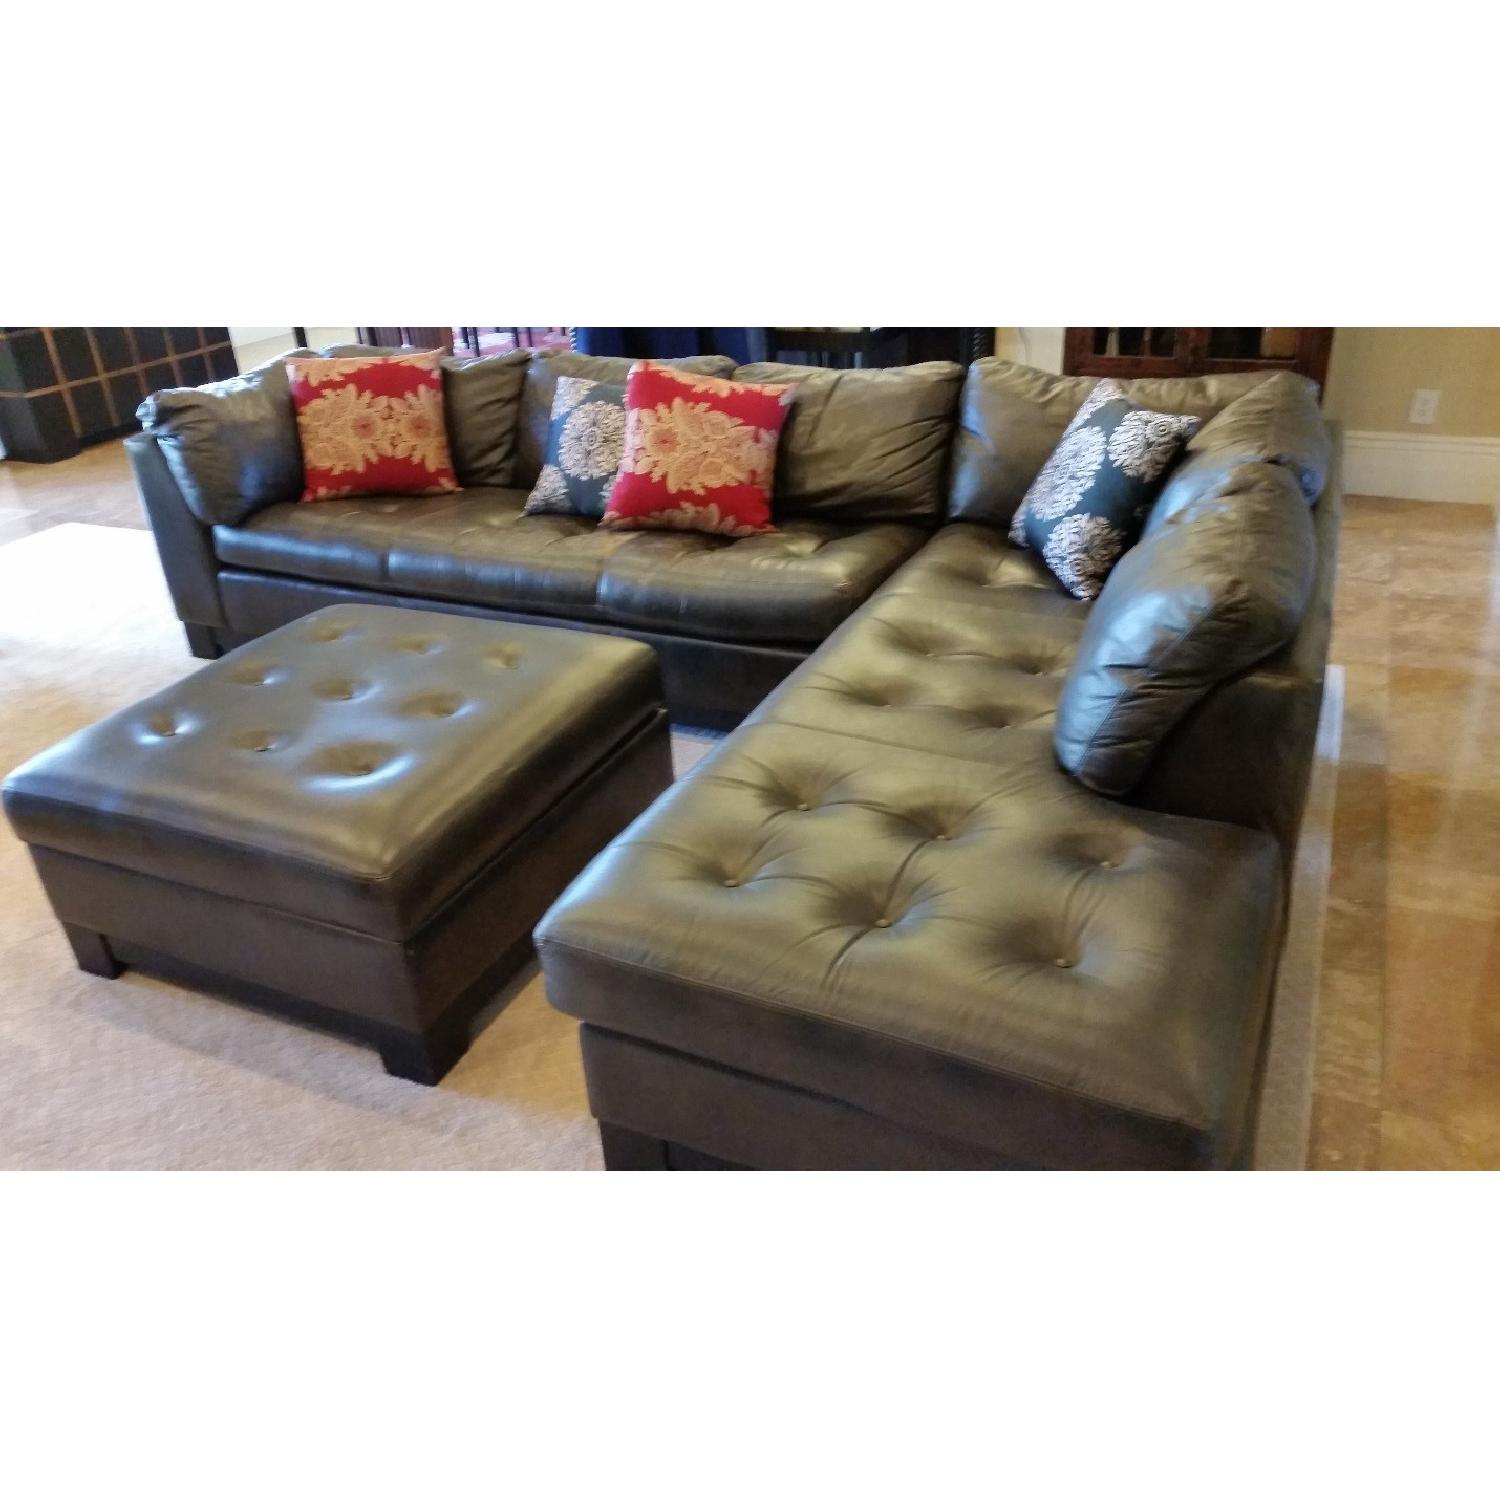 Brown Tufted Leather 2-Piece Sectional Sofa - image-1